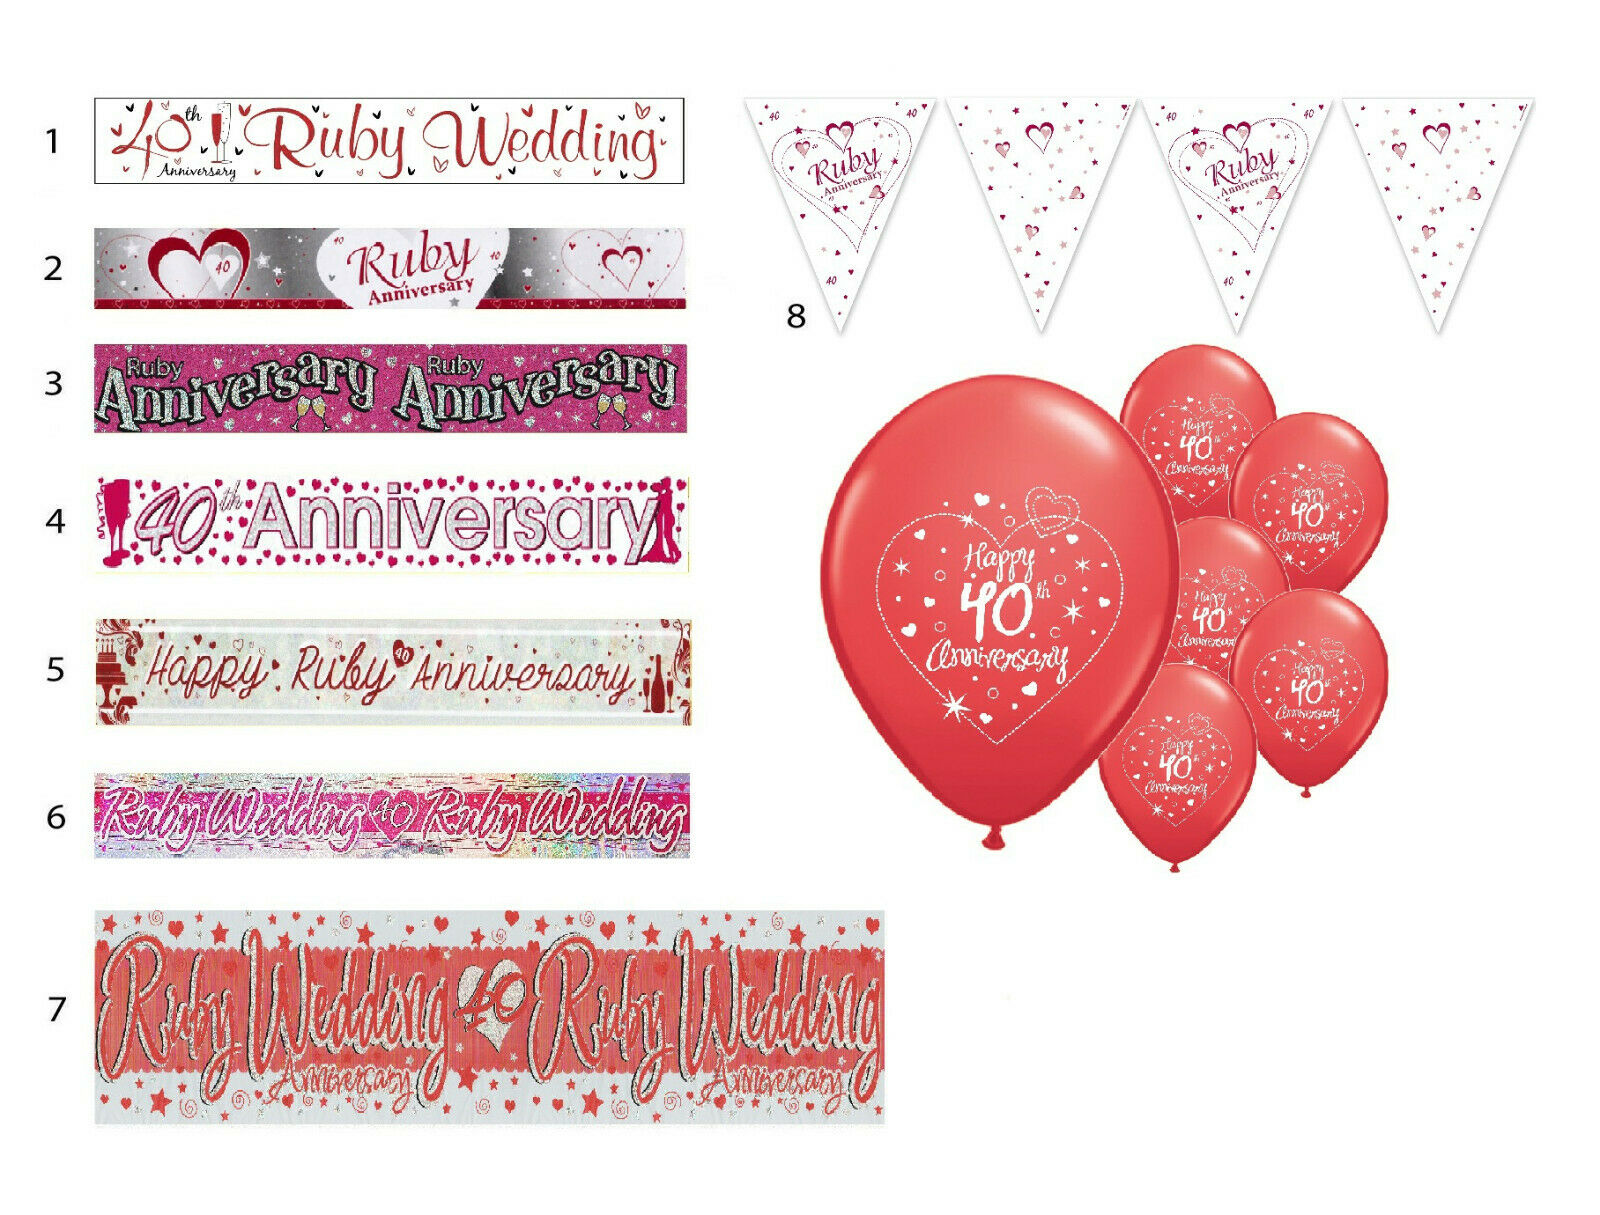 40TH RUBY WEDDING ANNIVERSARY BANNERS 8 DESIGNS PARTY DECORATIONS ...